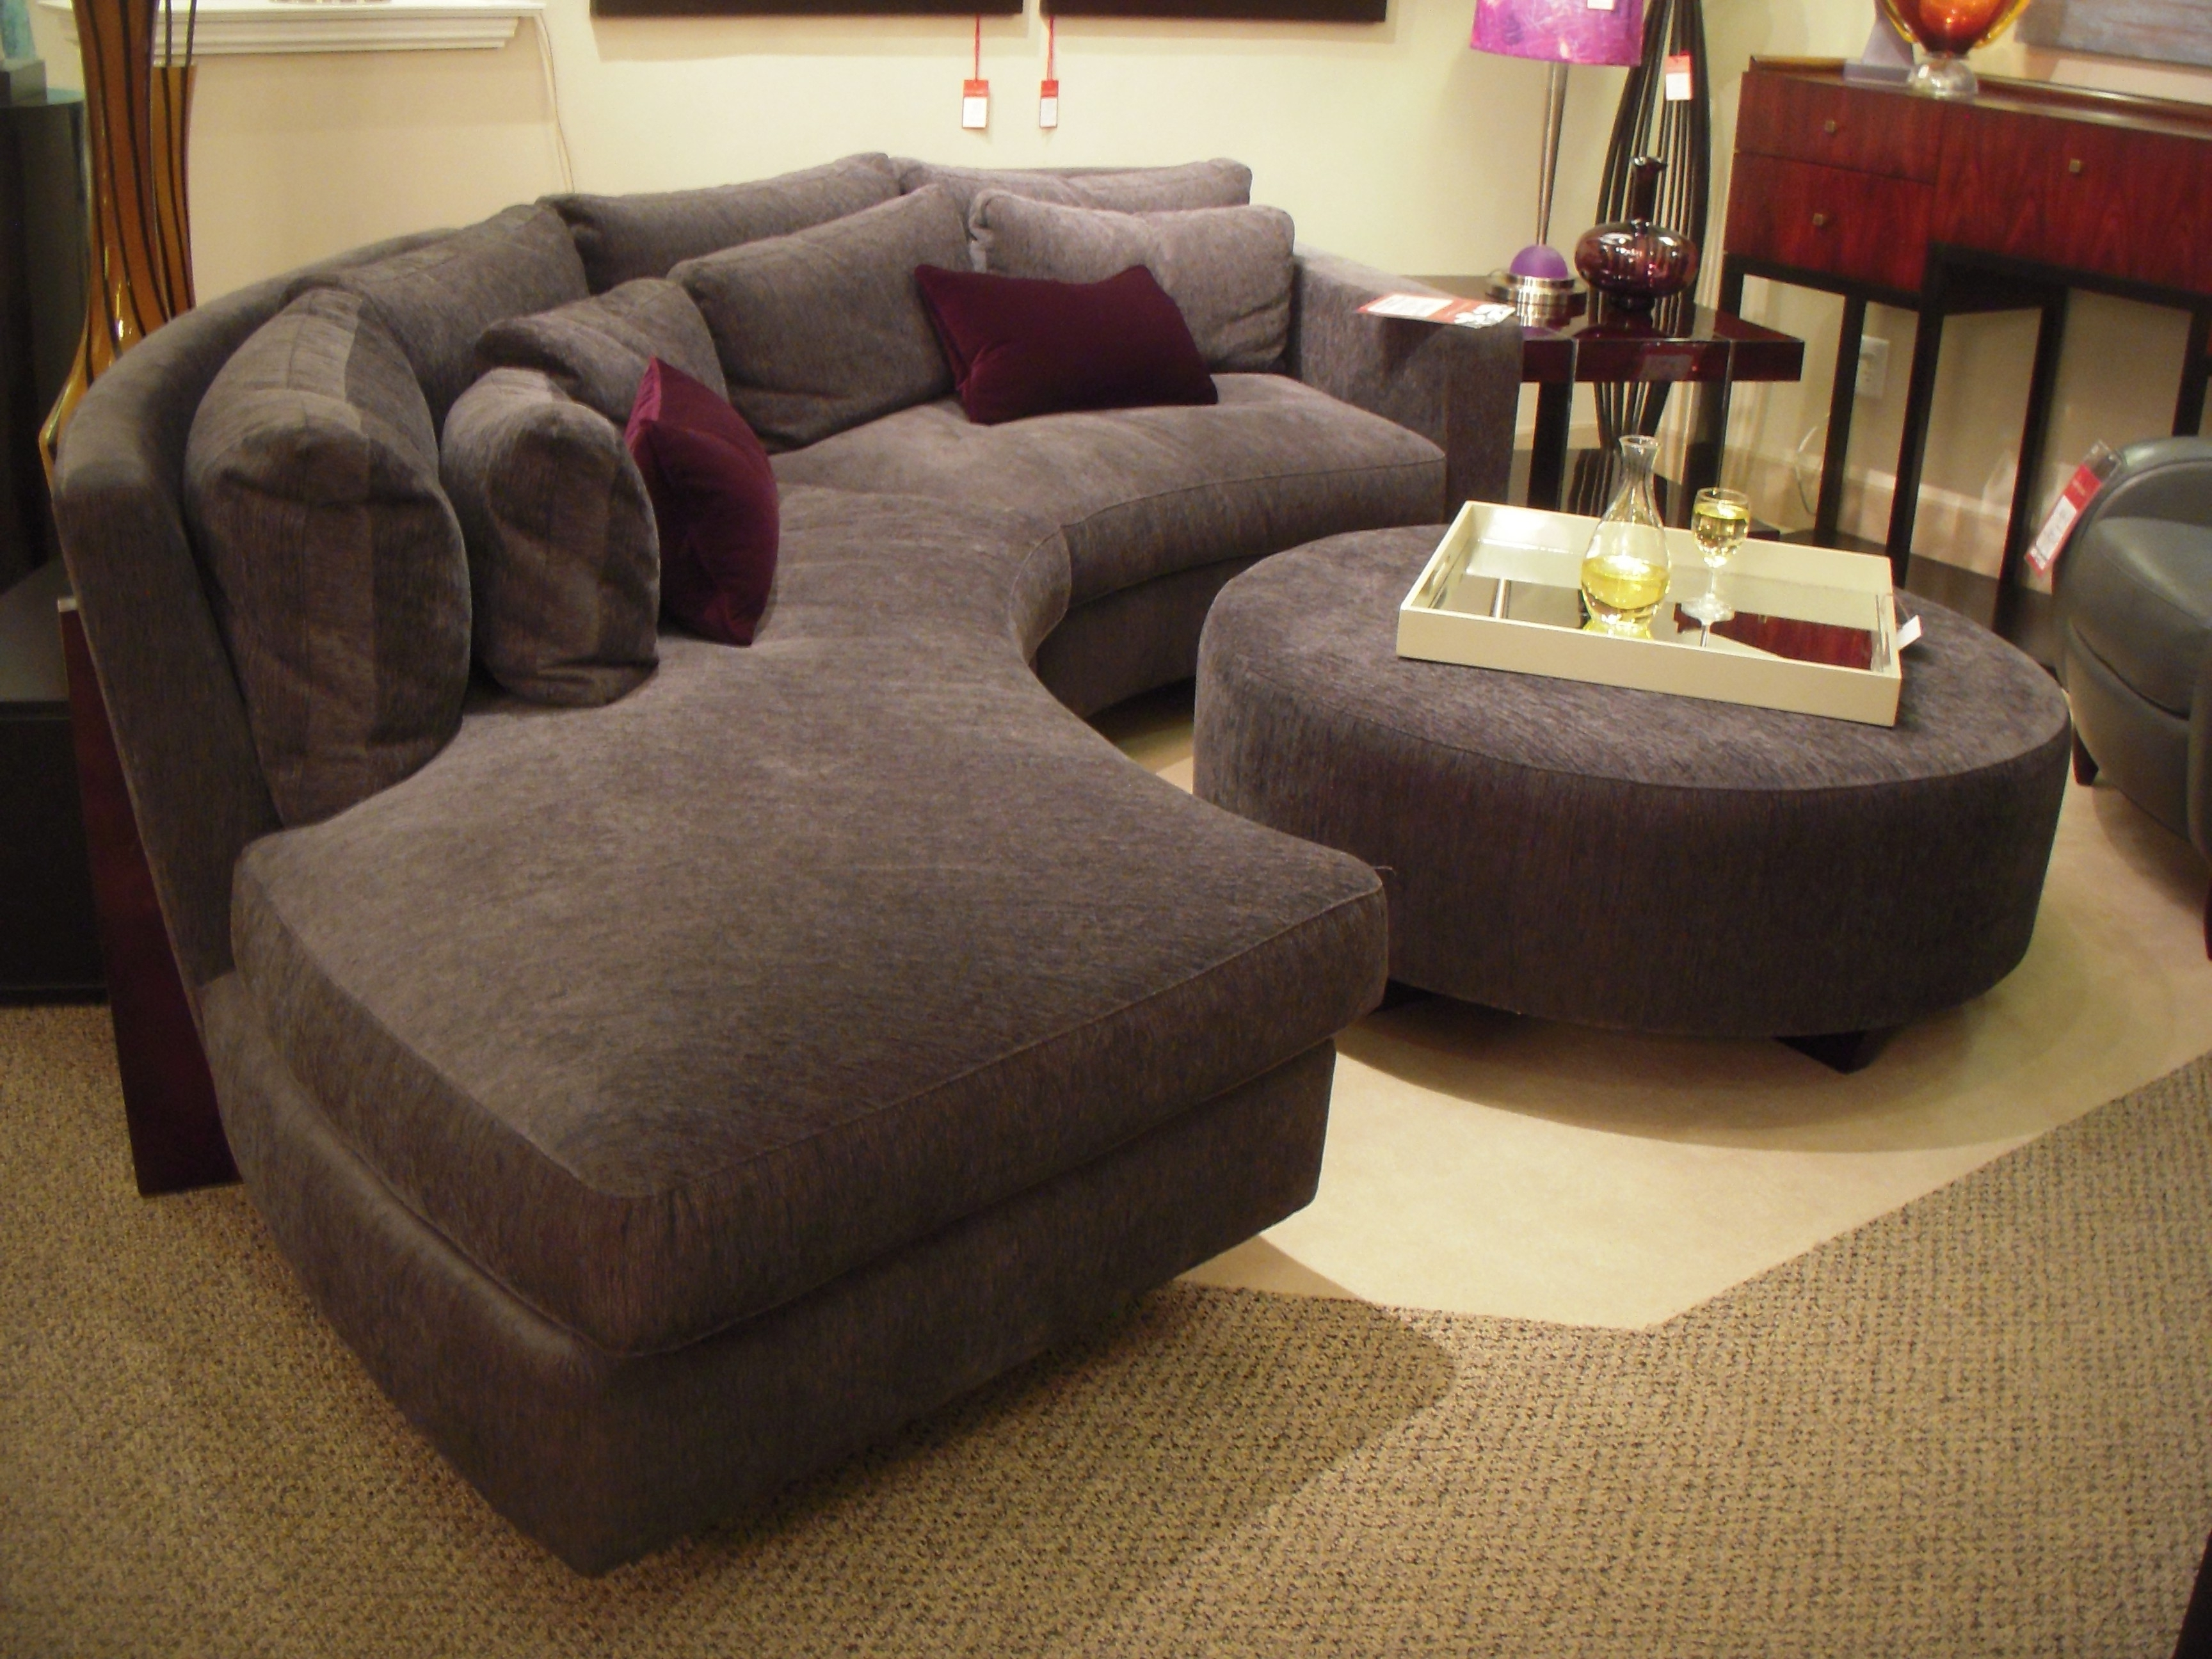 Circular Sectional Sofas Intended For Most Recently Released Sofa : Glamorous Round Sectional Sofa Bed Curved Leather Tufted (View 6 of 20)